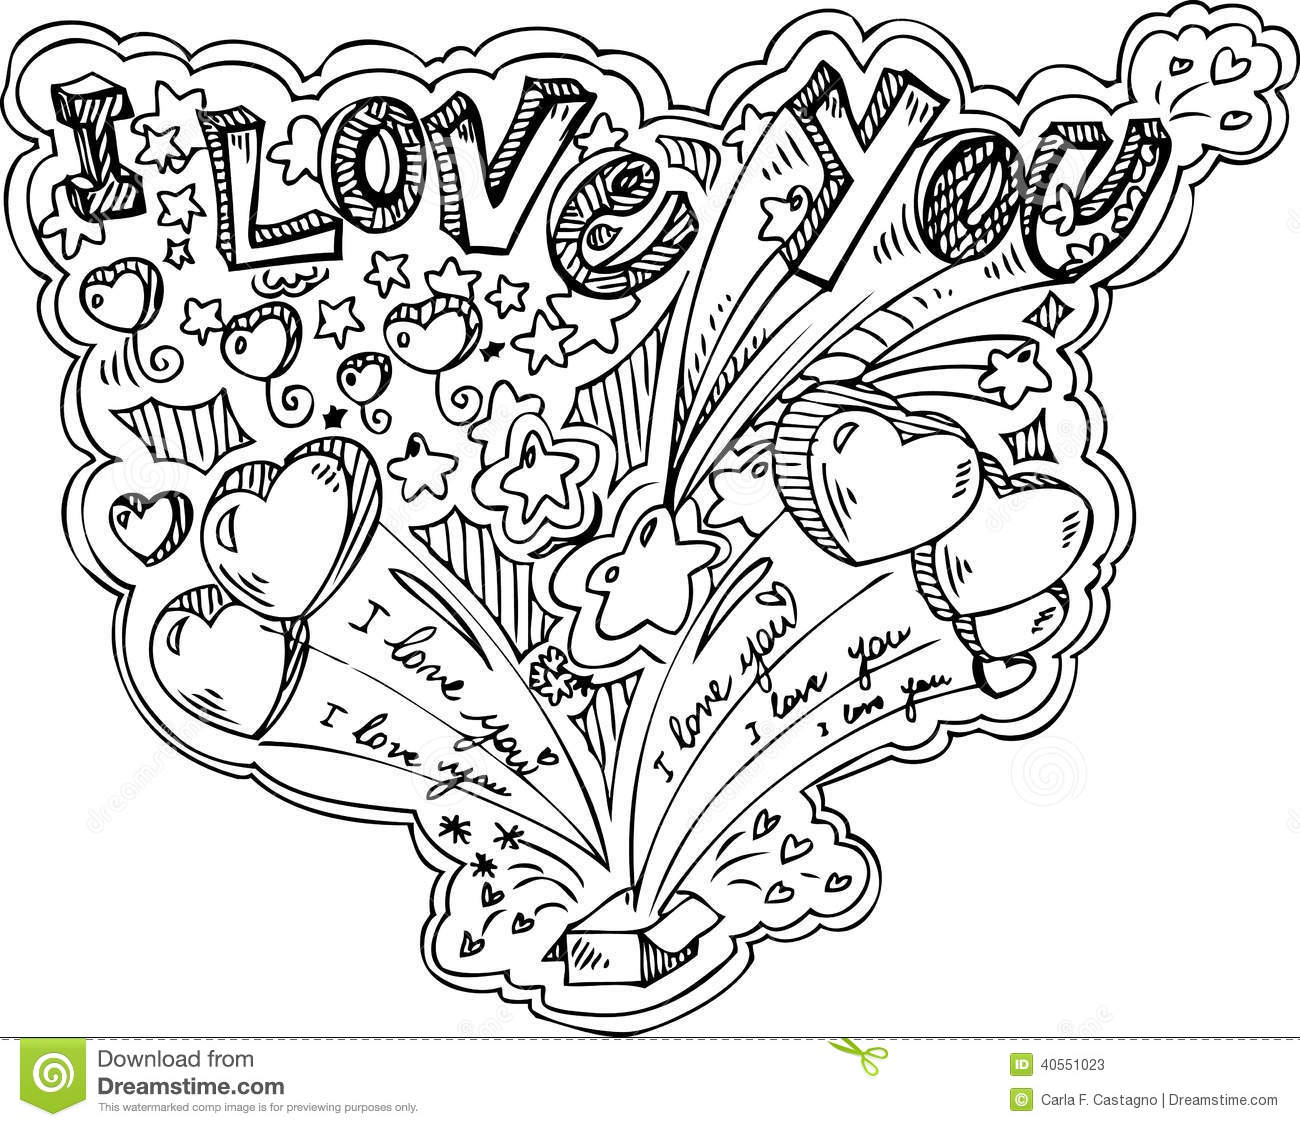 I Love You Doodle Vector Stock Vector Illustration Of Doodle 40551023